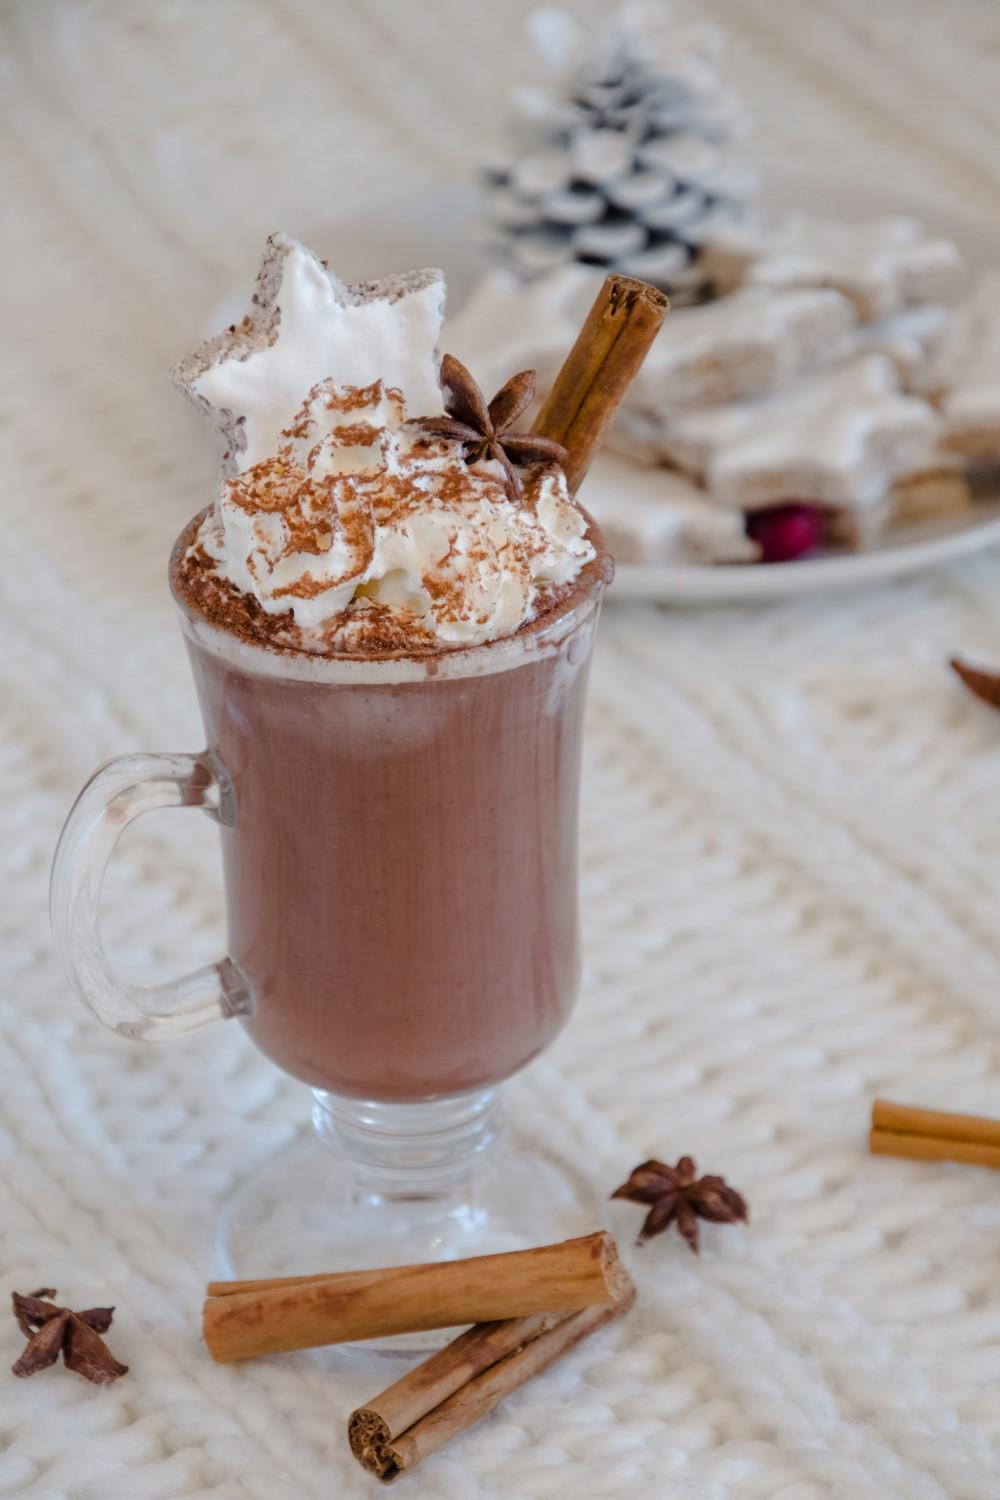 Use Your Noodles - Hot Chocolate